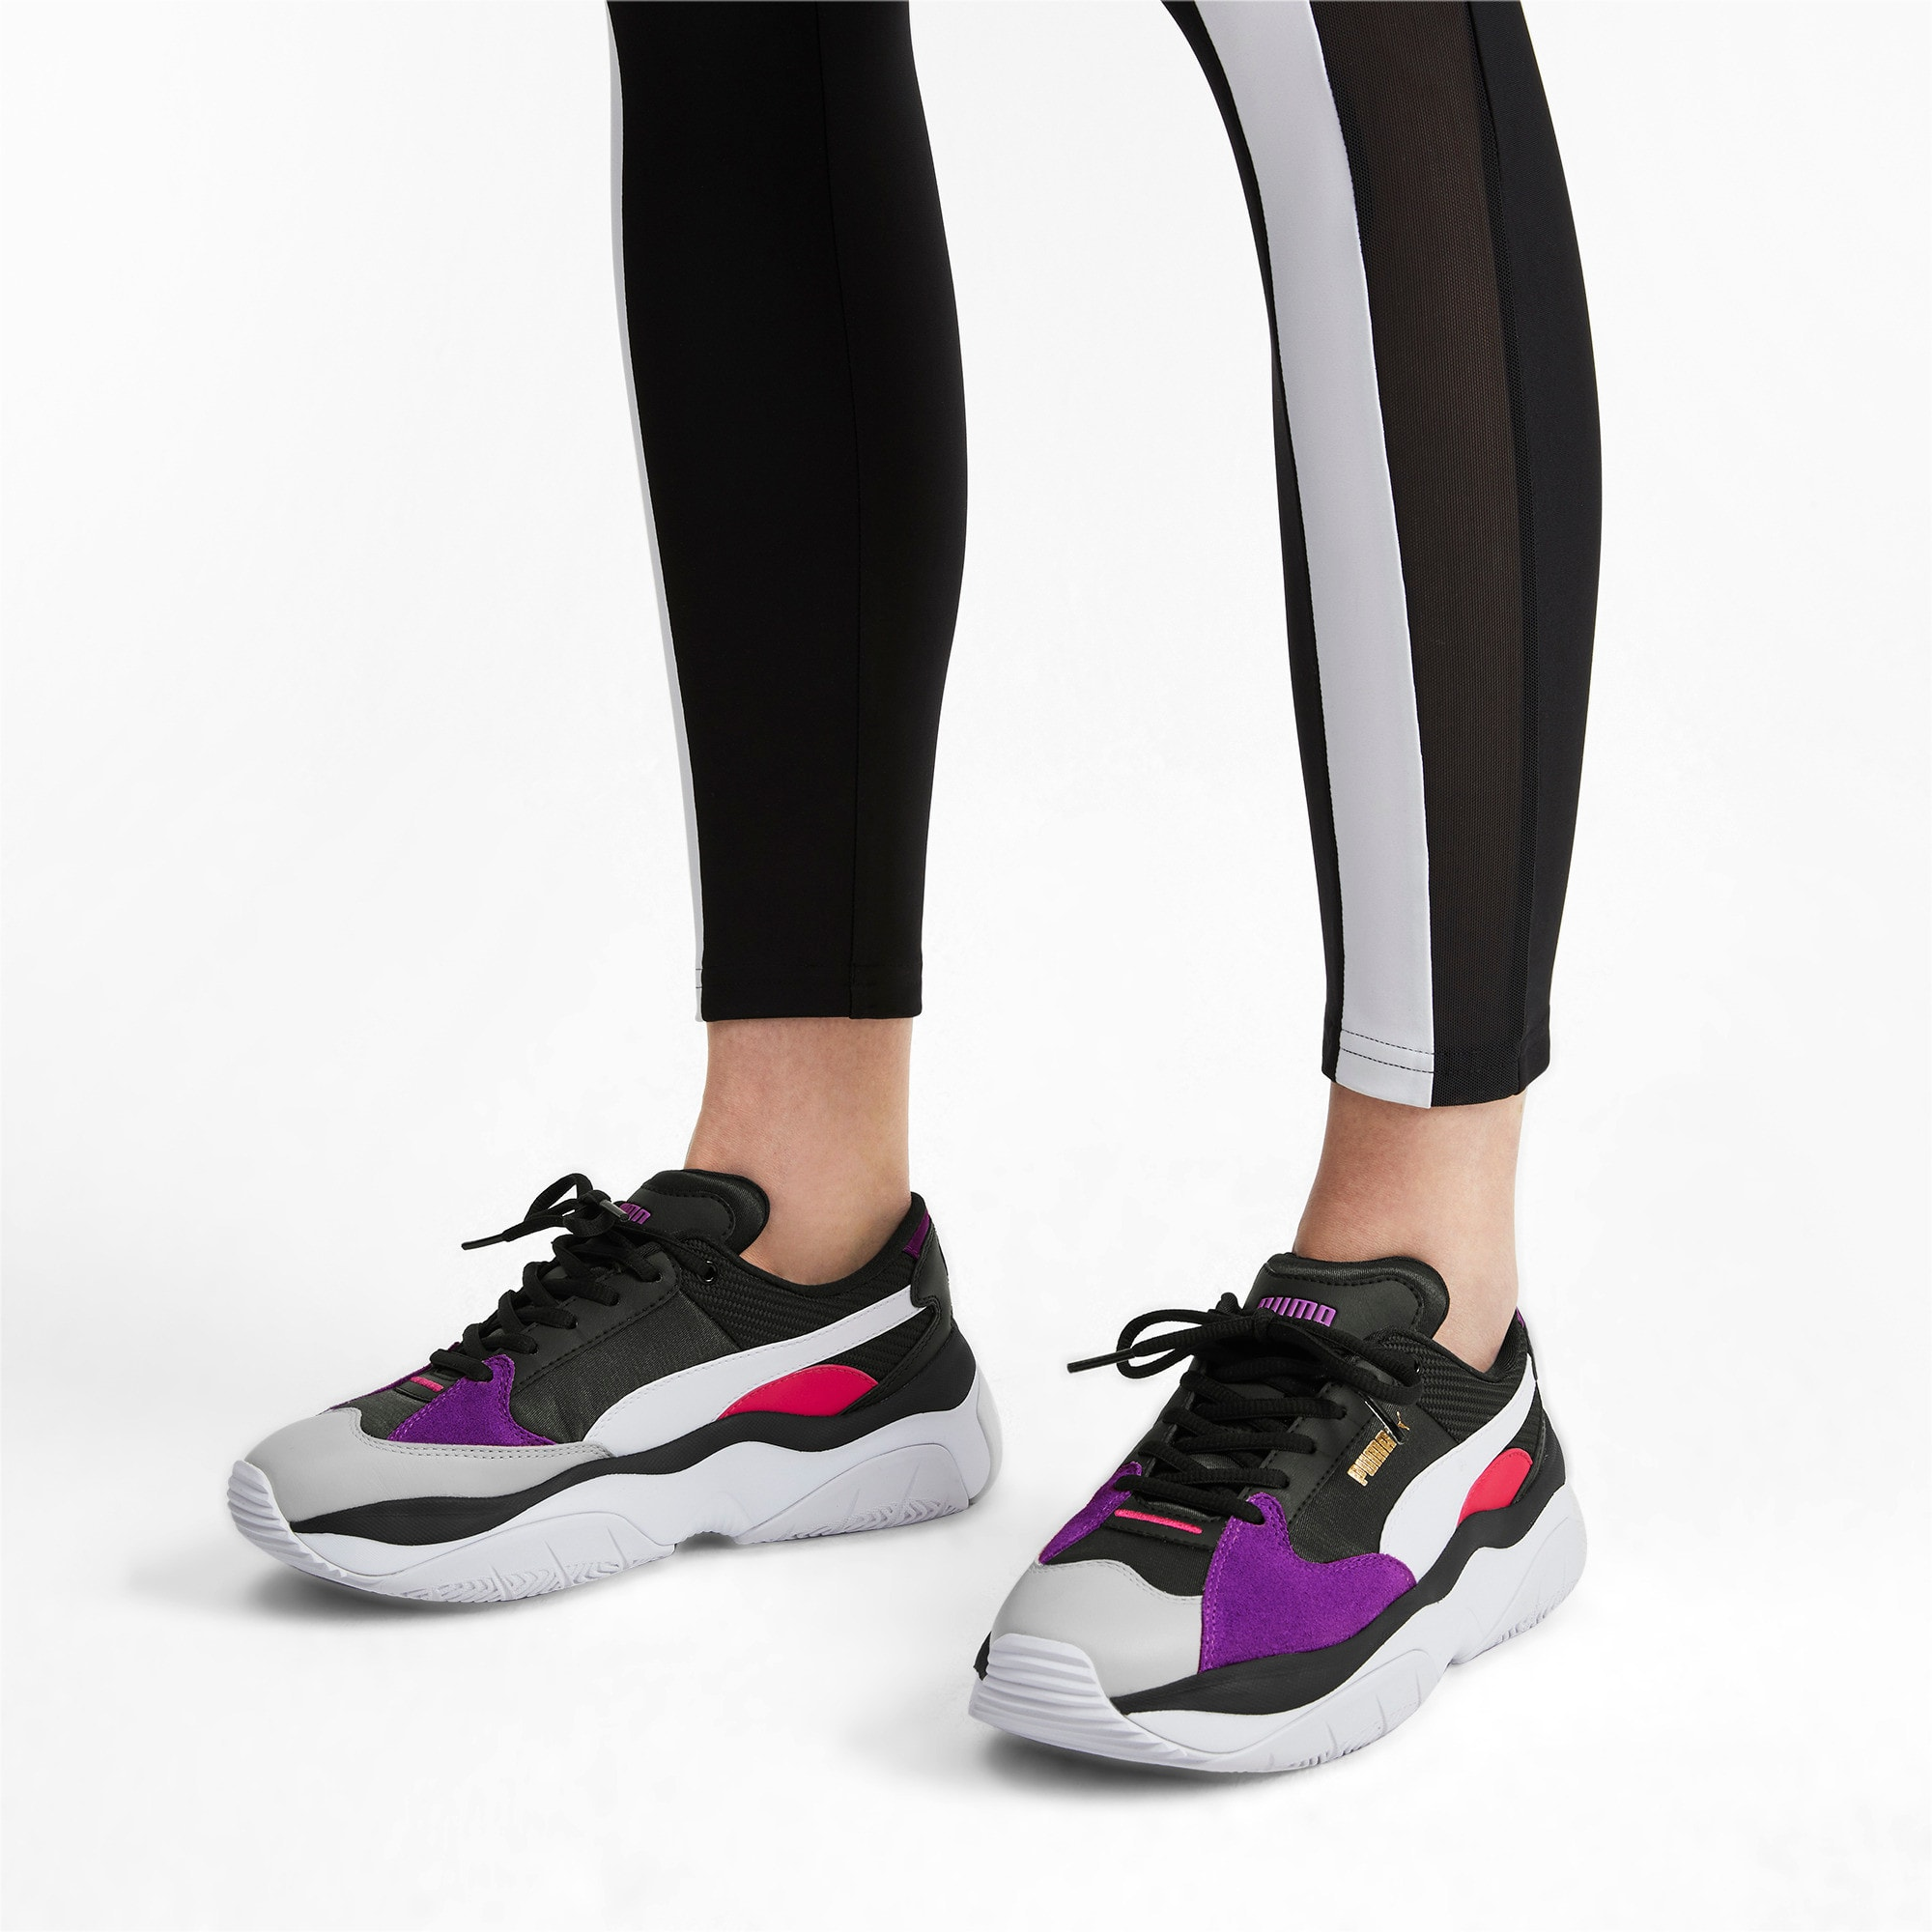 Thumbnail 2 of STORM.Y Damen Sneaker, Puma Black-Gray Violet, medium